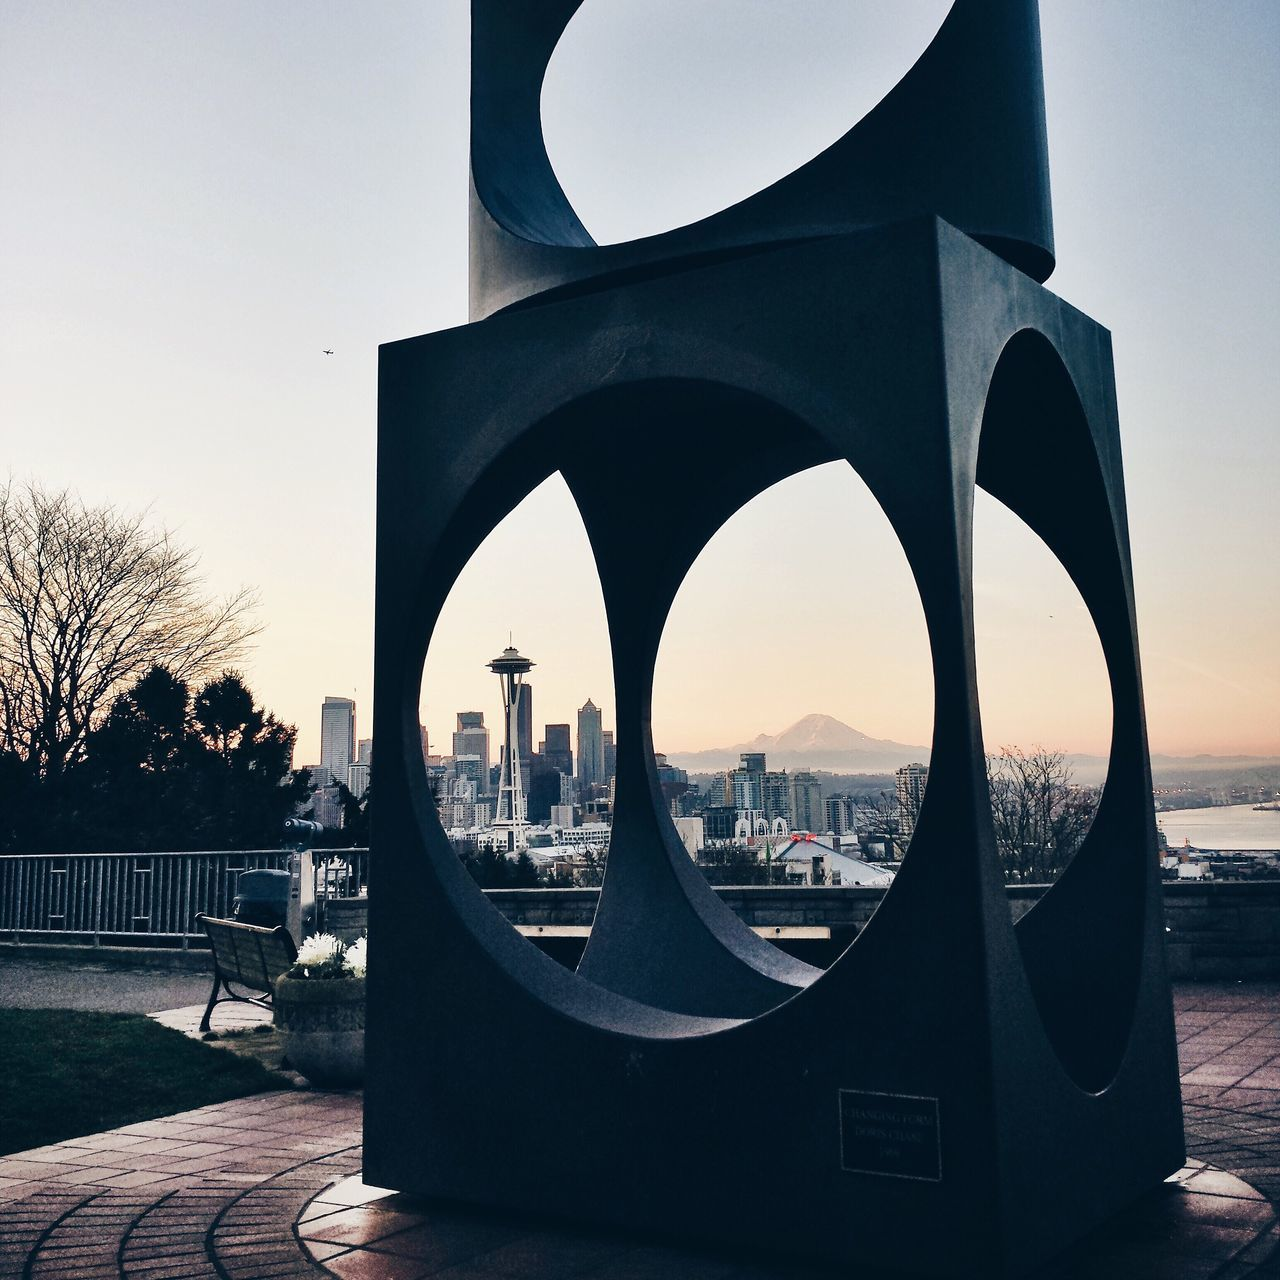 Architecture Built Structure Sky Day Water No People River Building Exterior City Outdoors Close-up Seattle Horizon Over Water Tadaa Community 12daysofeyeem EyeEm Best Shots